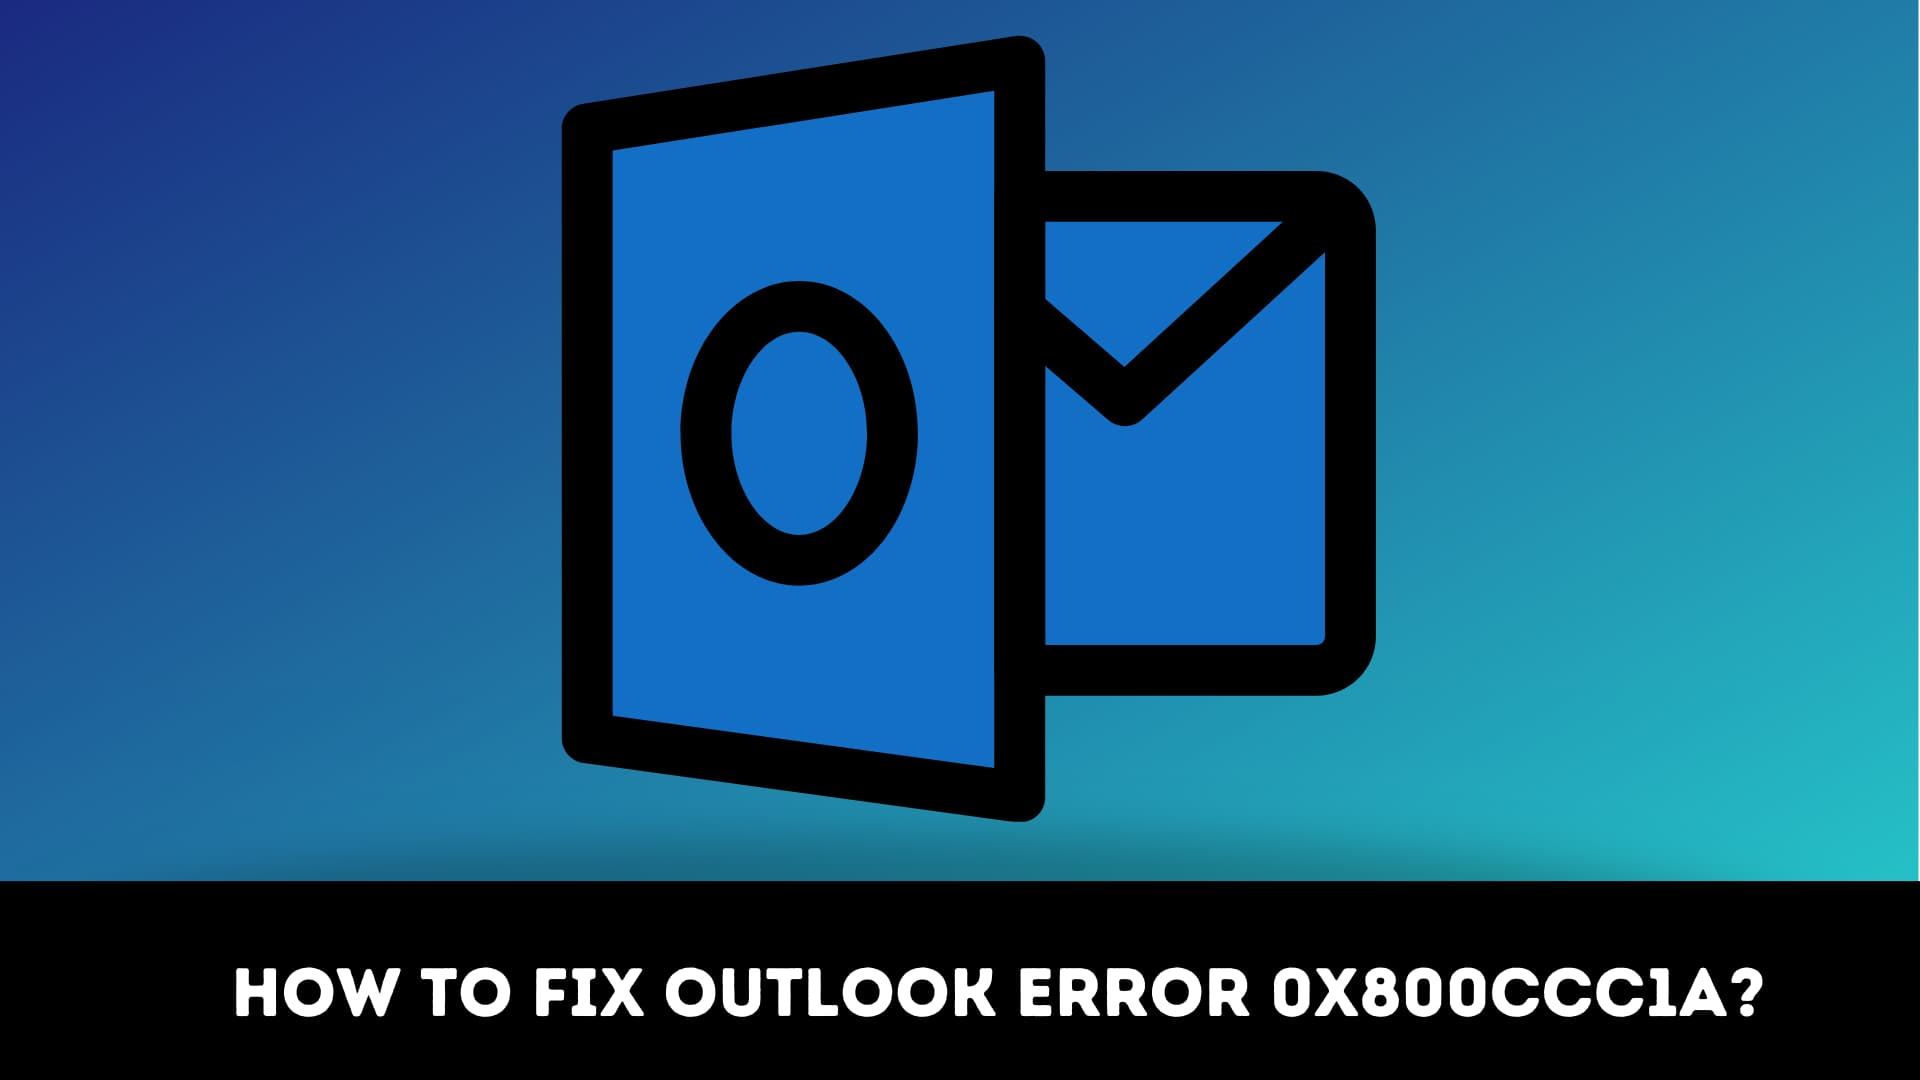 How to Fix Outlook Error 0x800ccc1a?